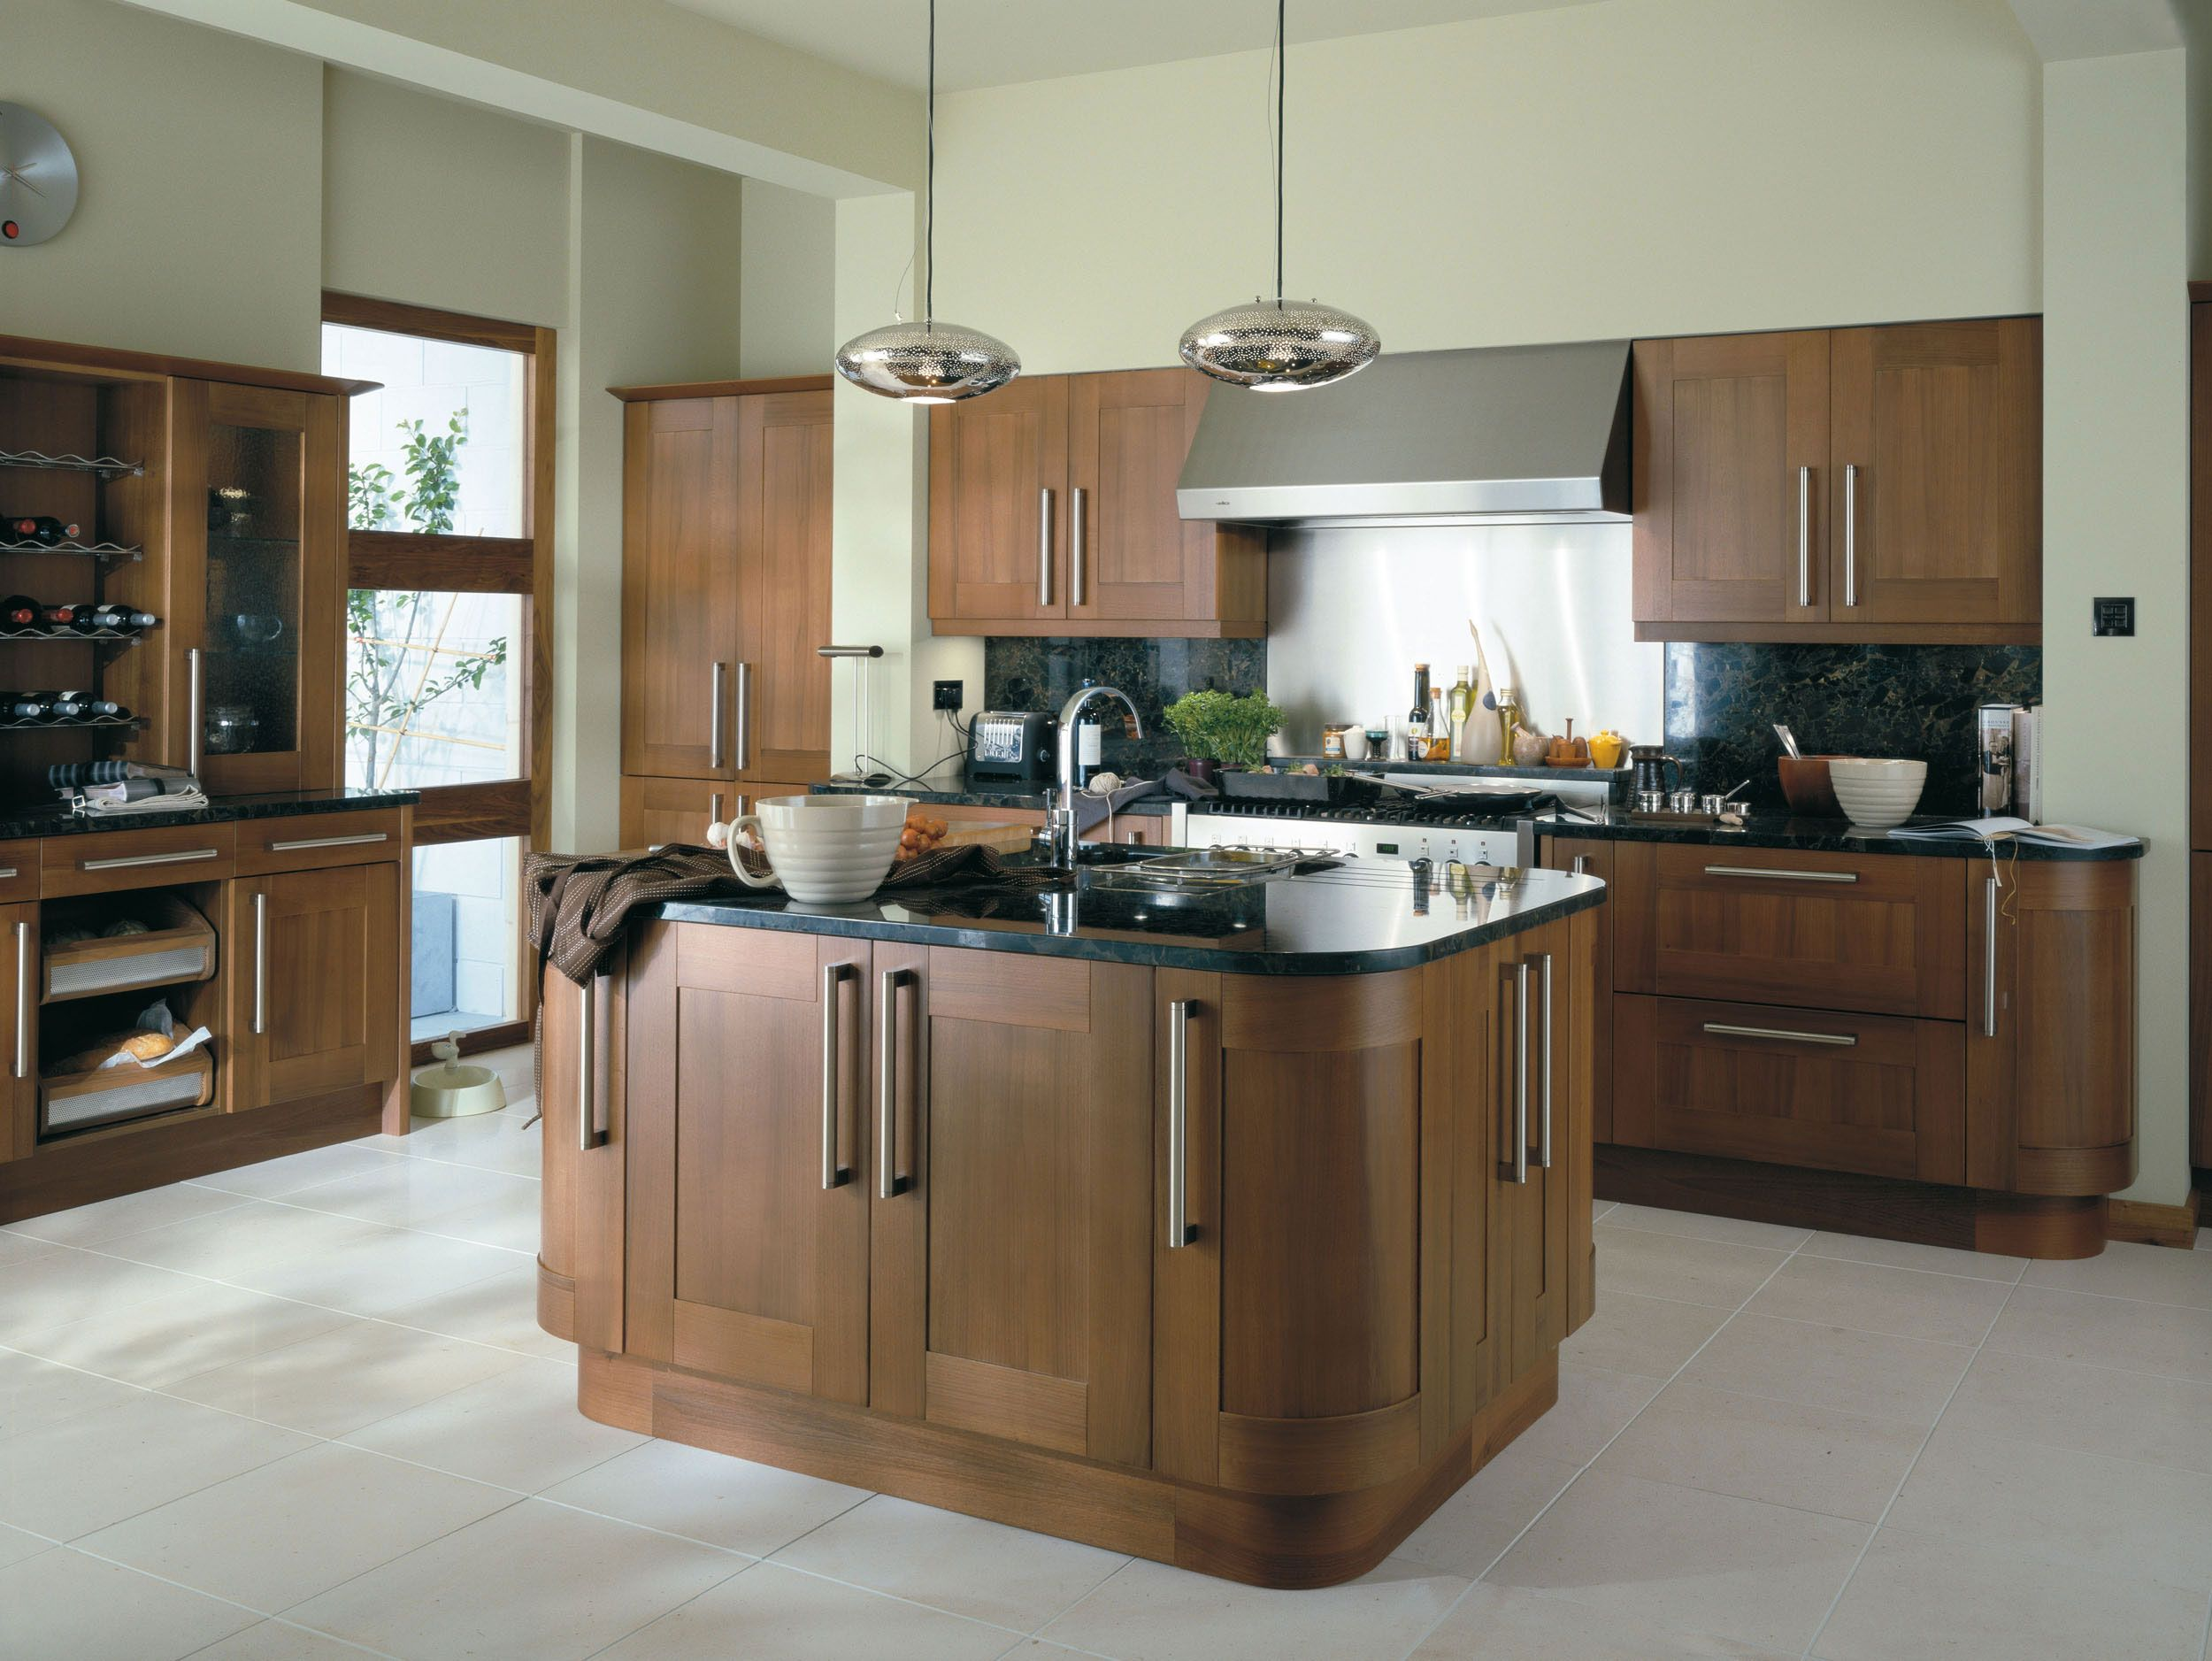 walnut brings warmth to any kitchen, tavari walnut differs from